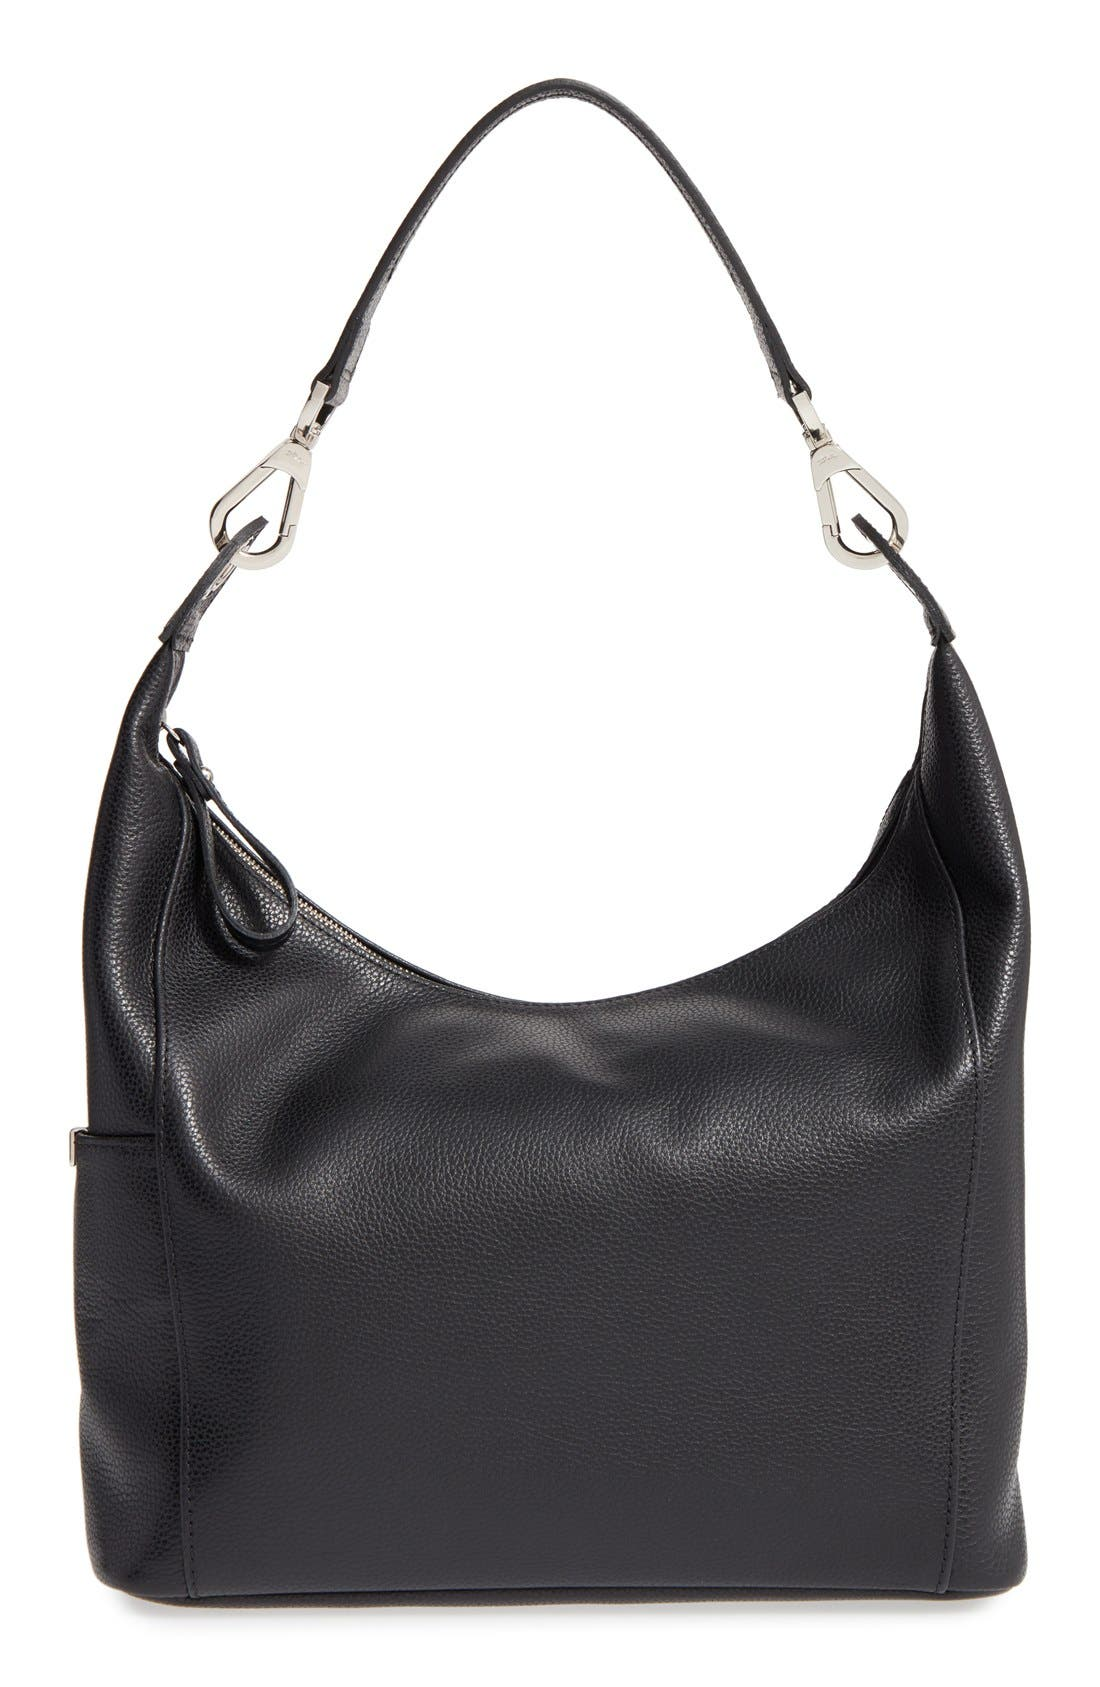 LONGCHAMP Le Foulonne Leather Hobo Bag